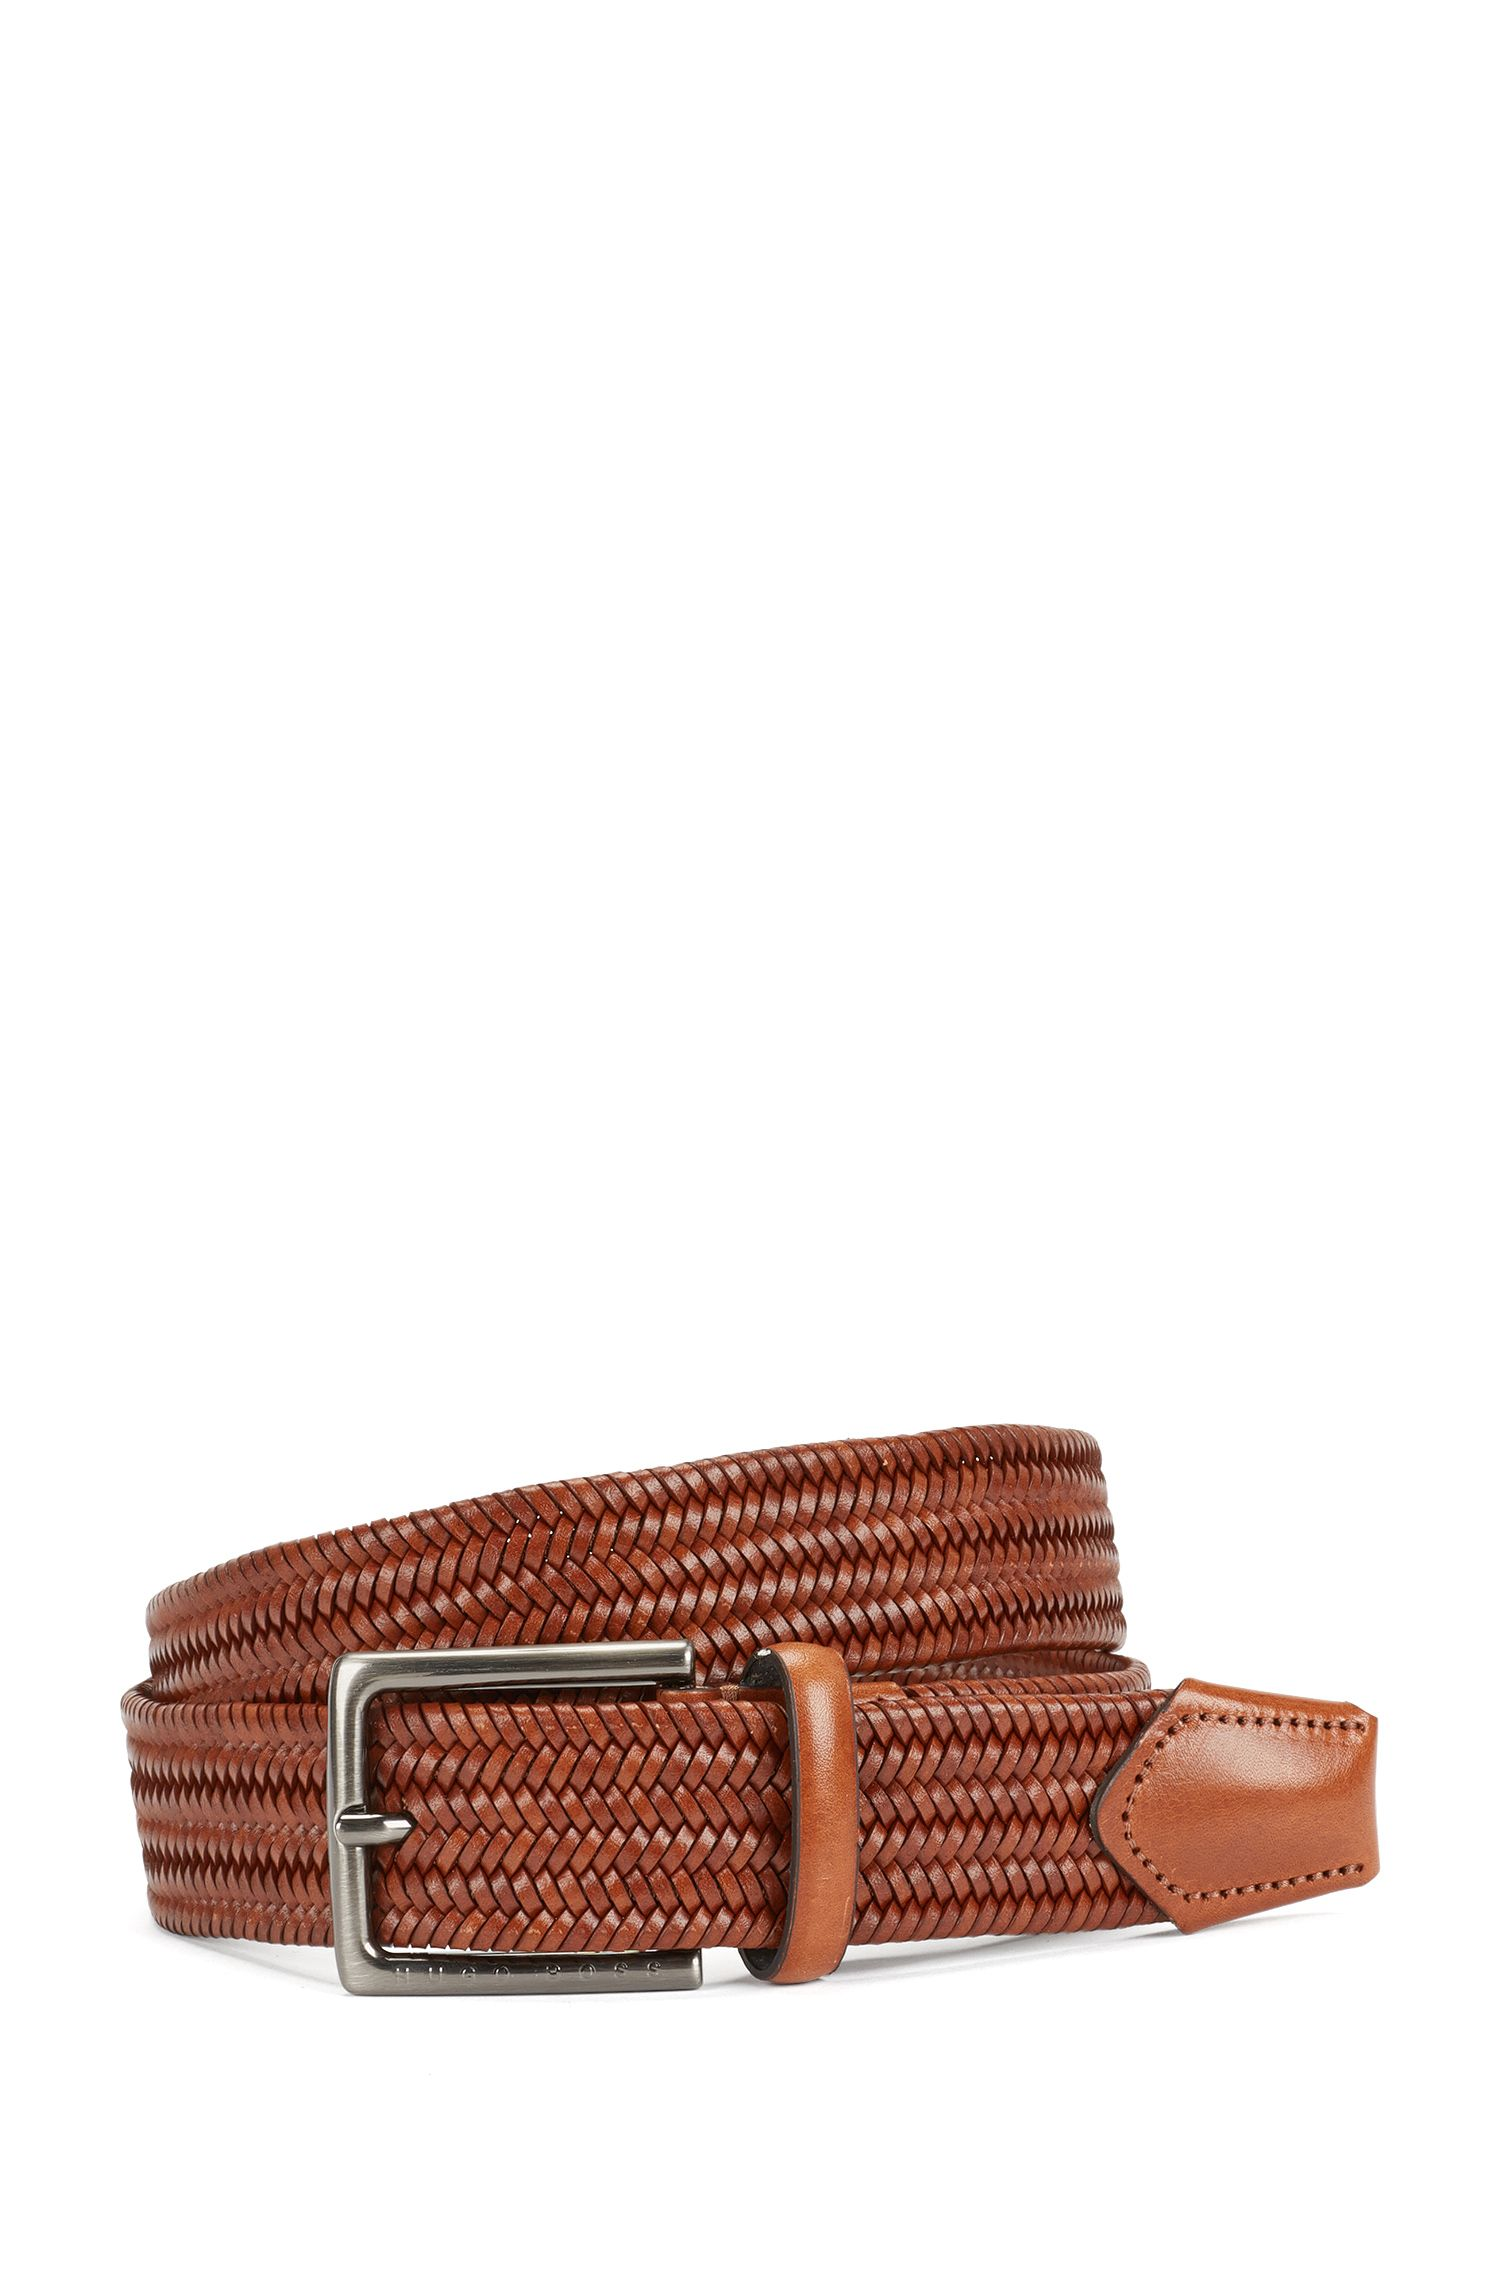 'Semyo Sz35 Mxwn' | Leather Handcrafted Braided Belt